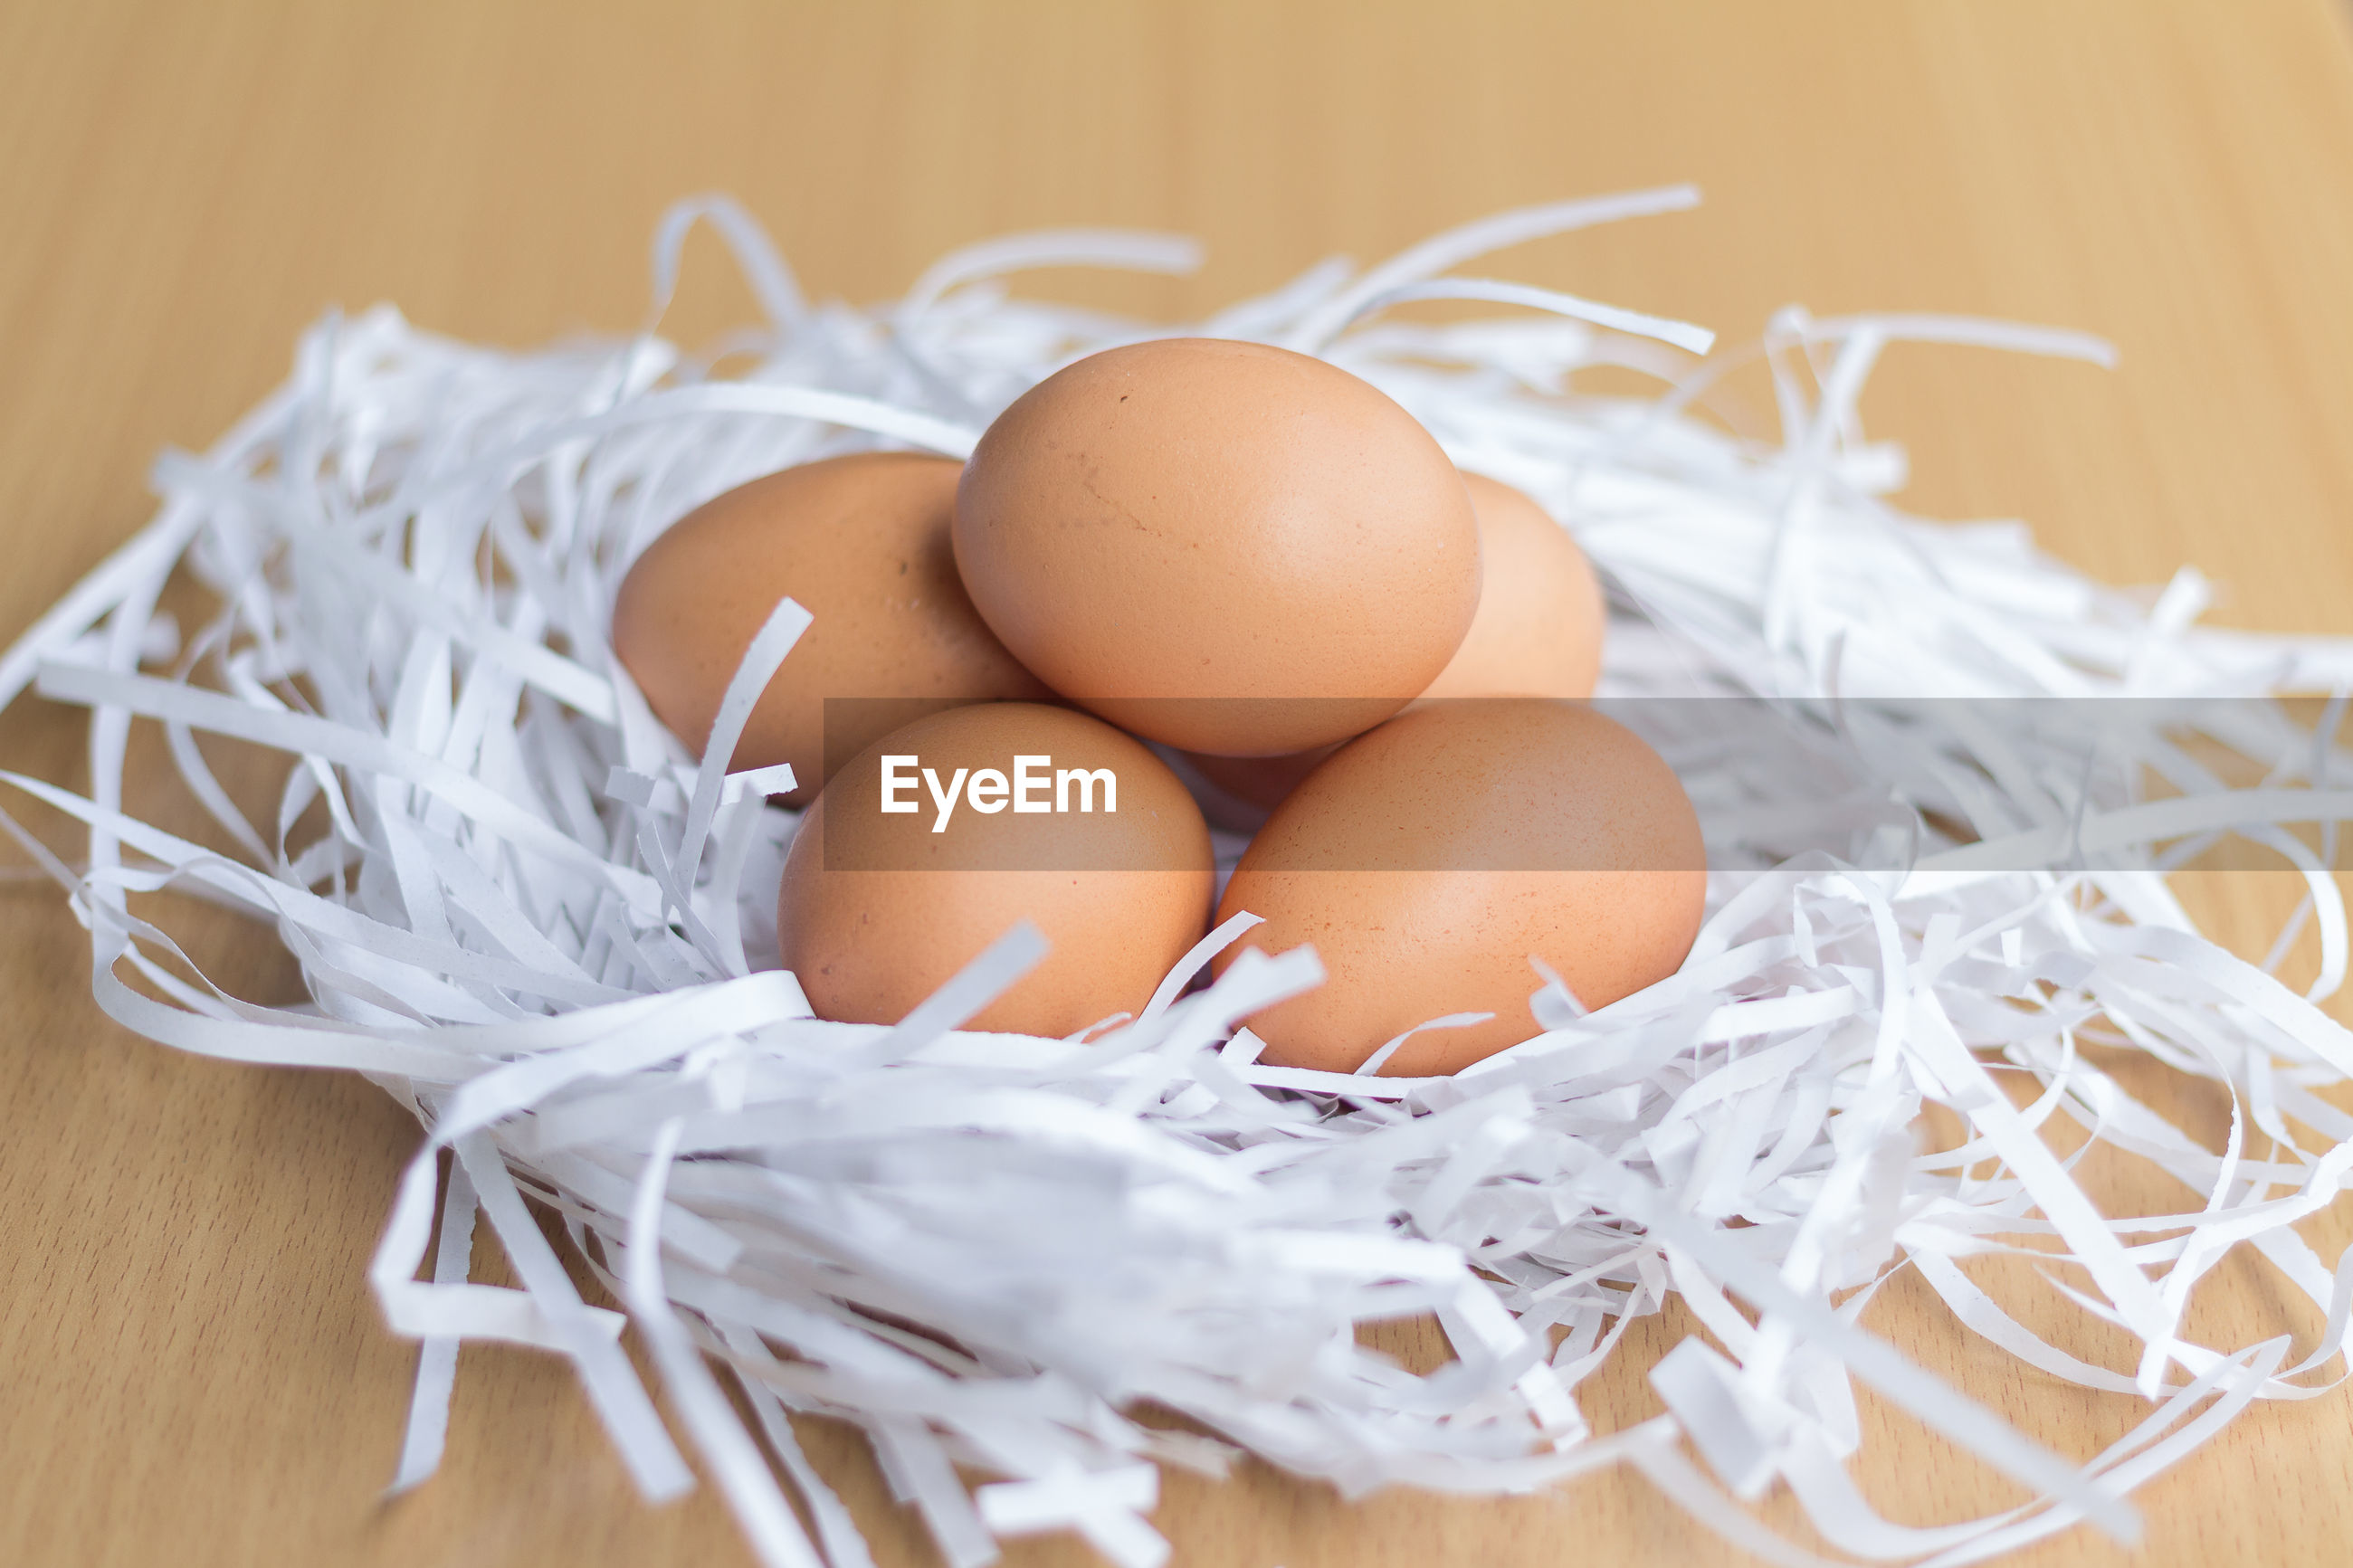 HIGH ANGLE VIEW OF EGGS IN CONTAINER ON FLOOR